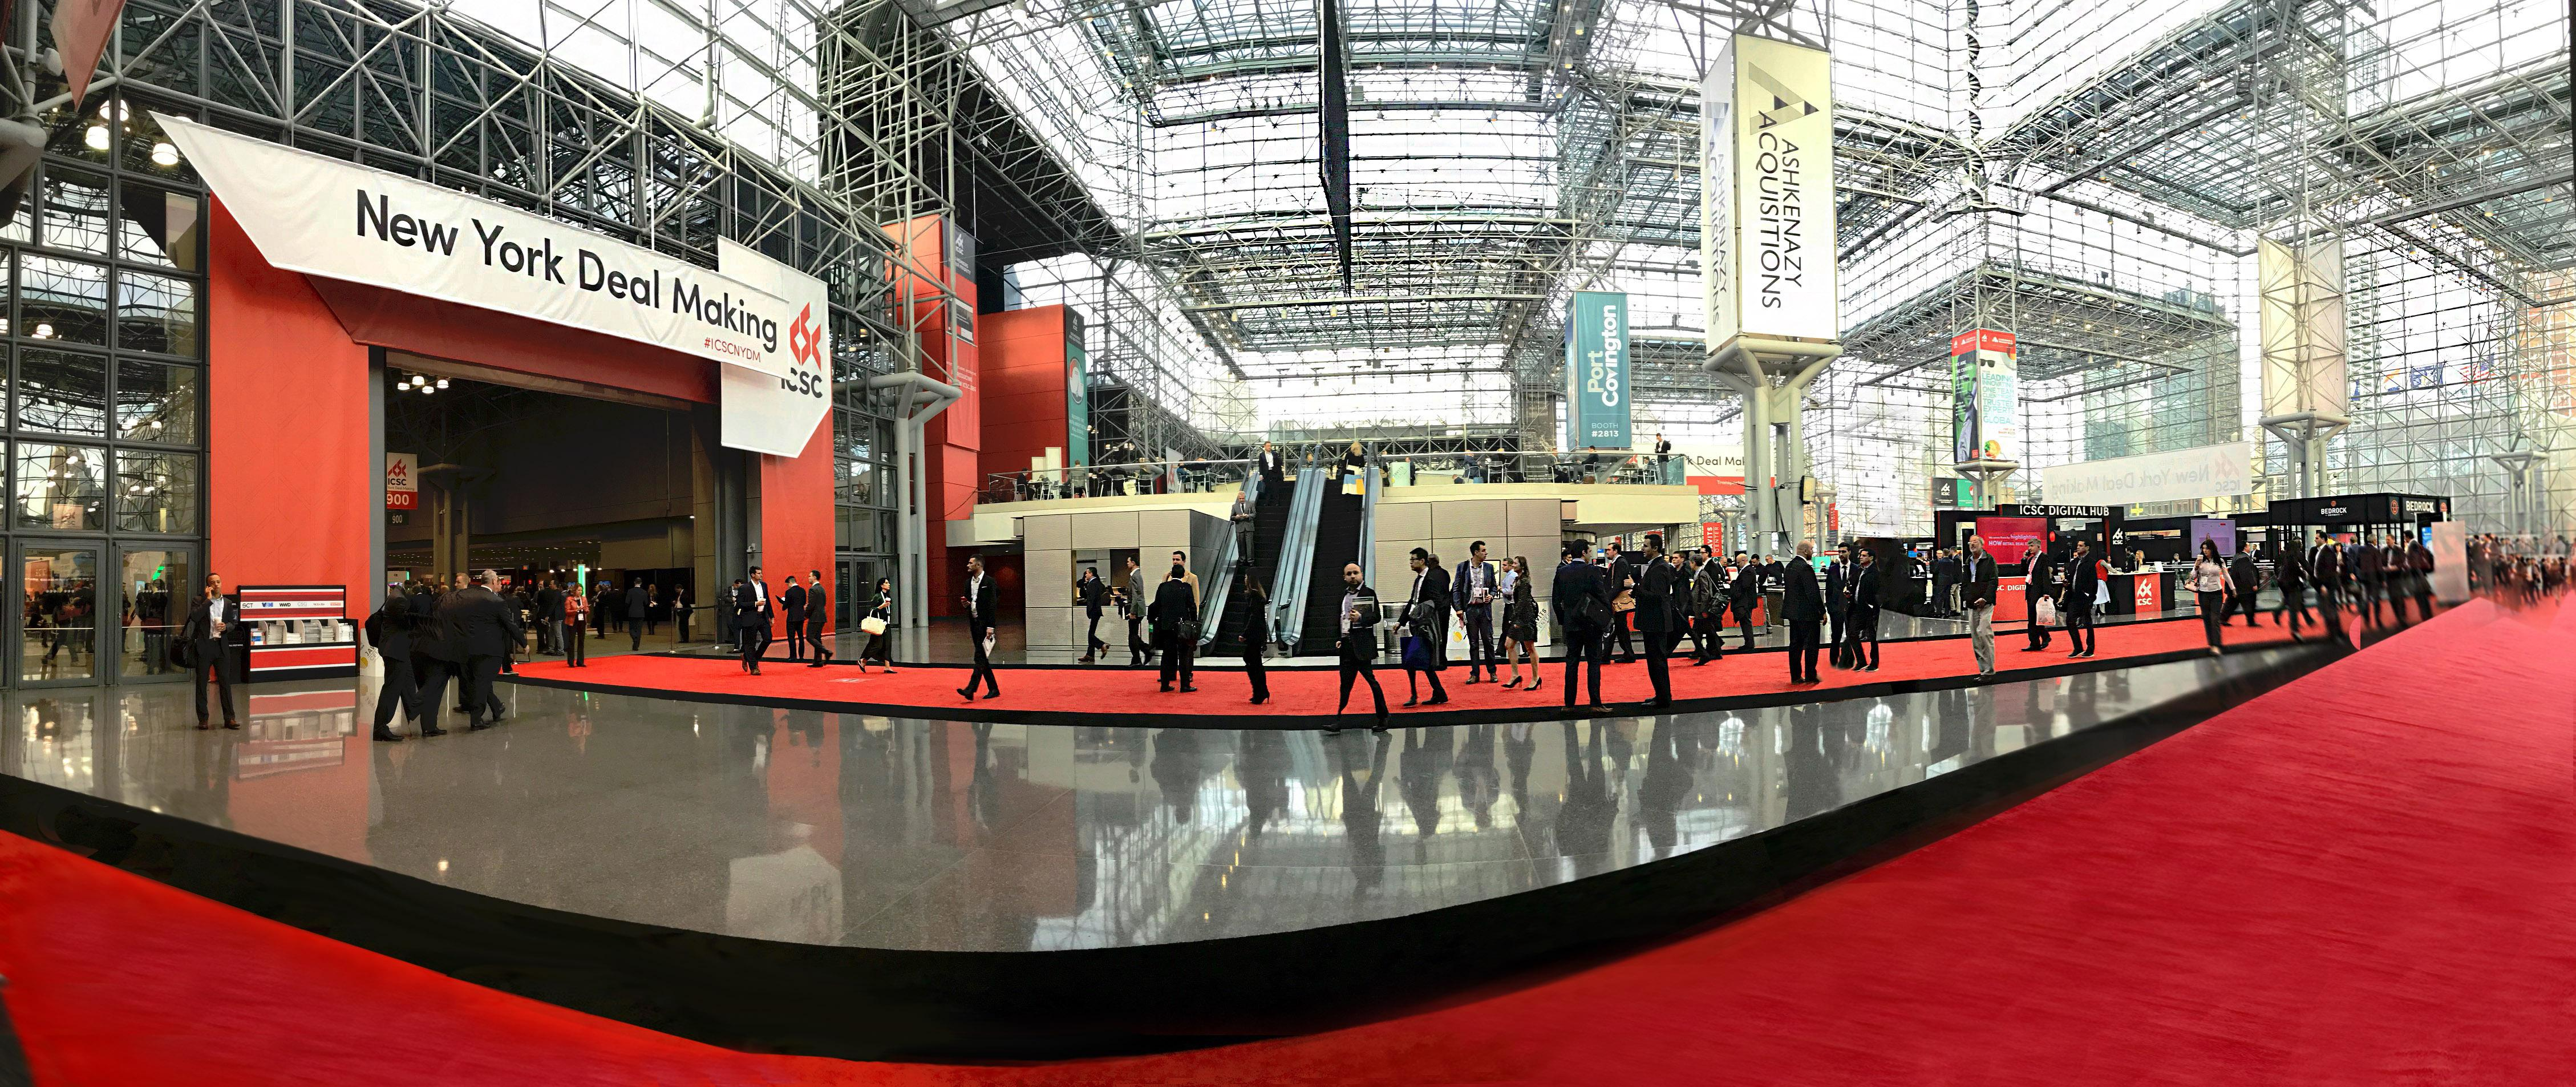 ICSC New York Deal Making Retail Developers